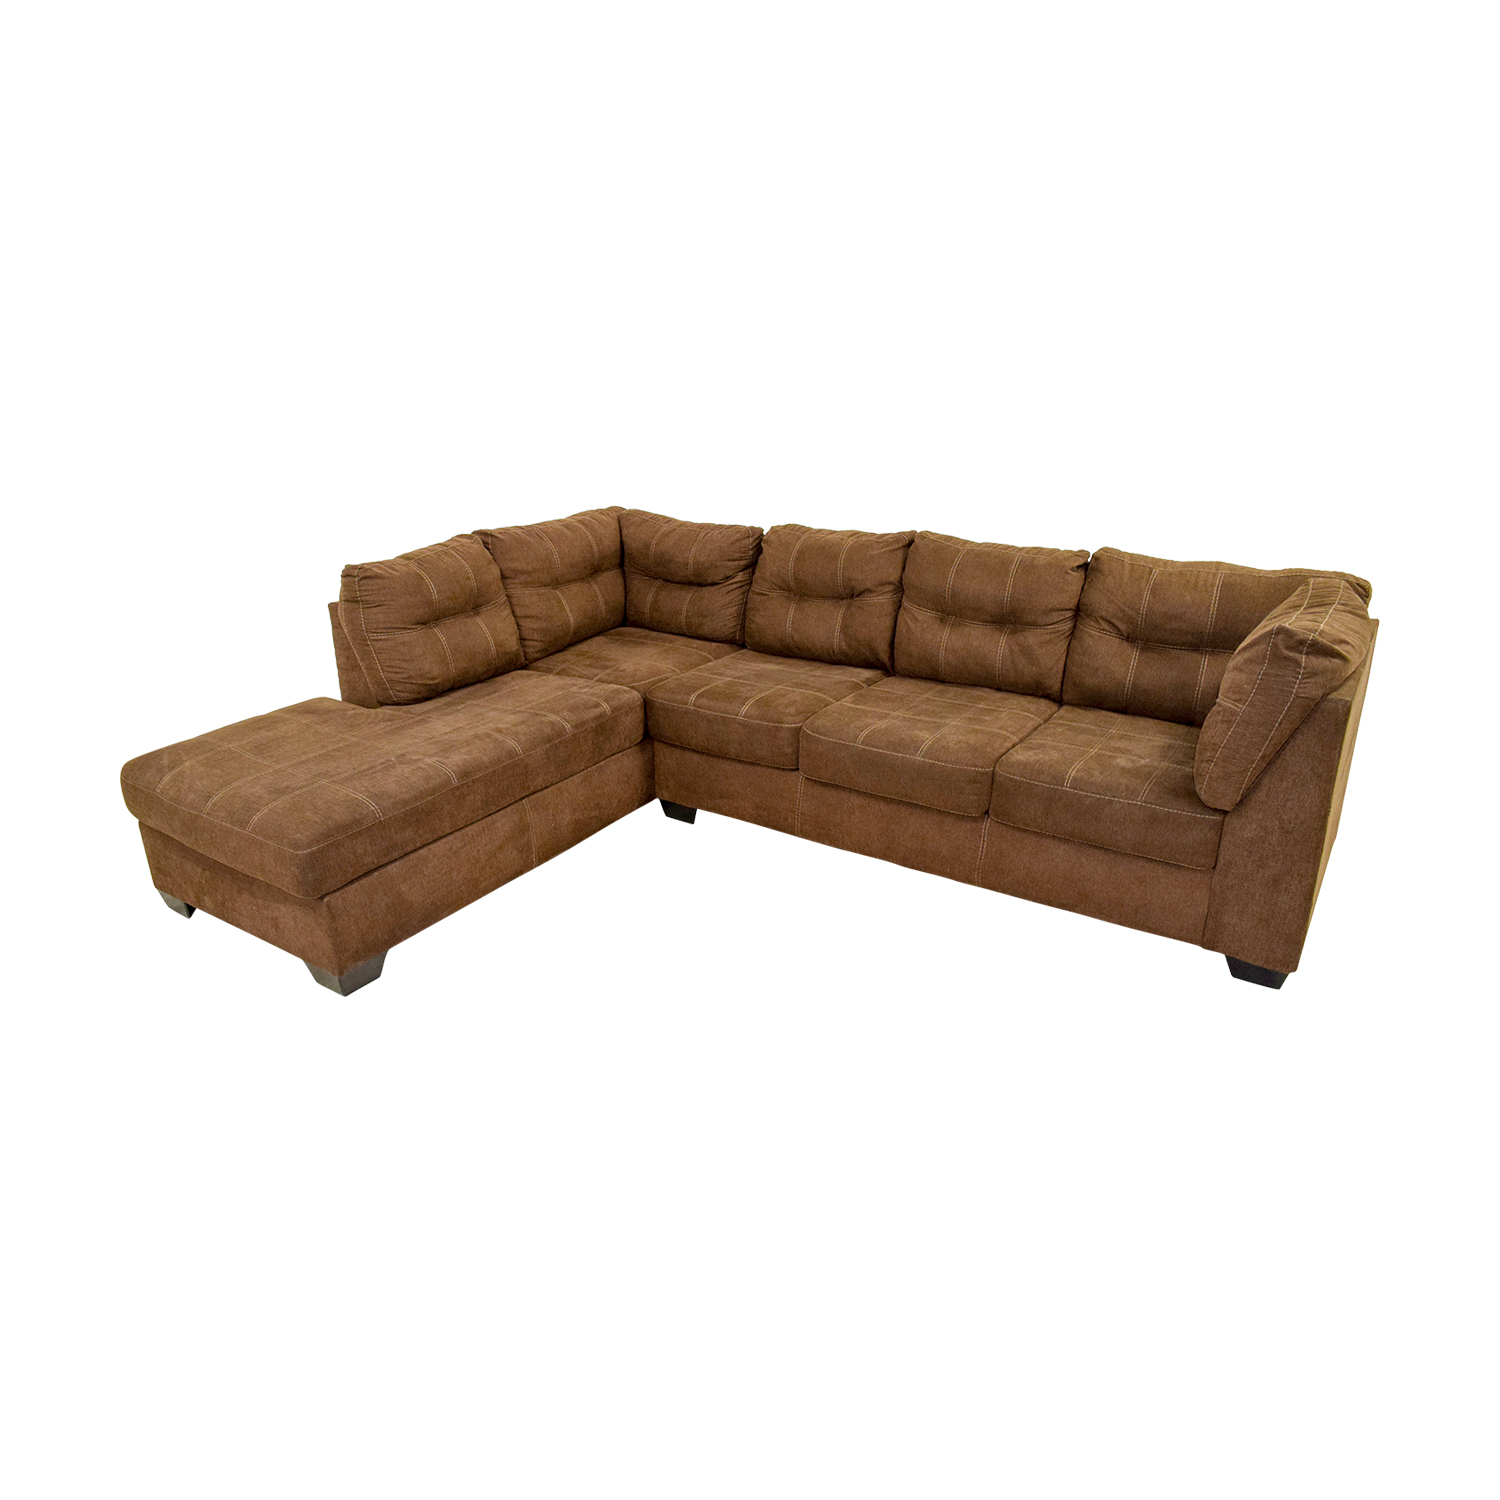 Brown L-Shaped Chaise Sectional Sofa sale